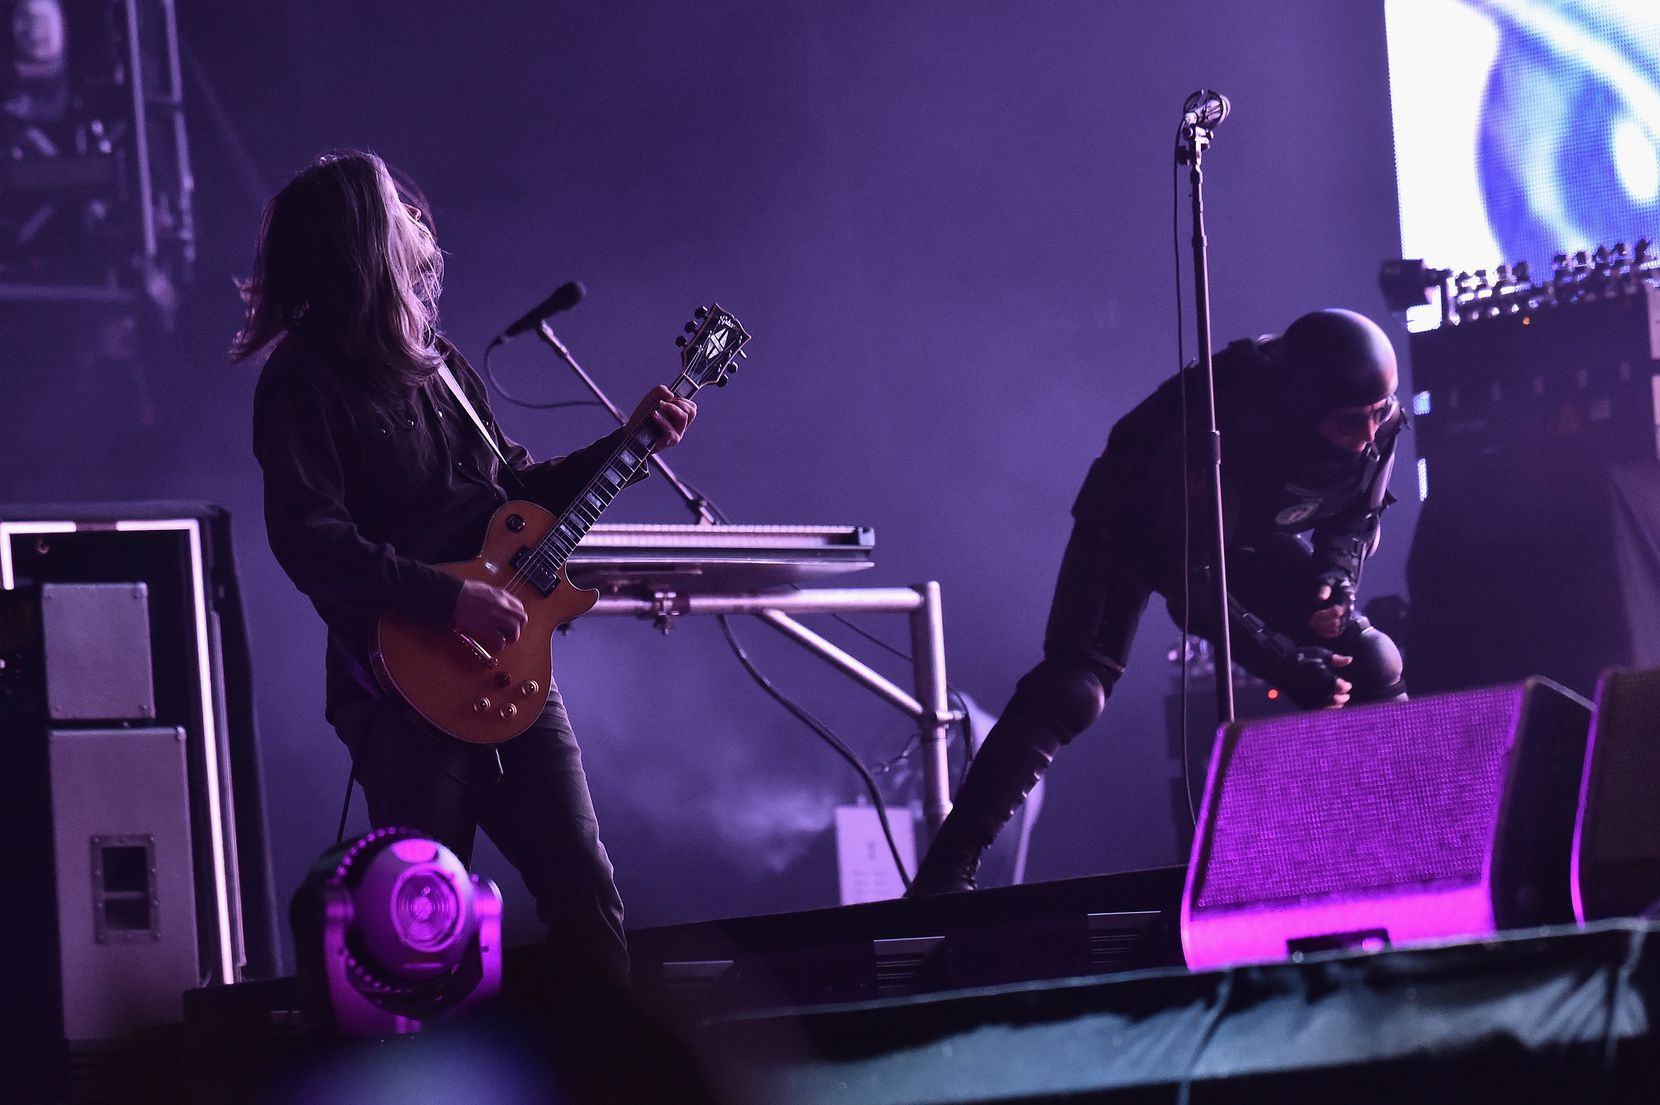 Adam Jones and Maynard James Keenan of Tool perform onstage during the 2017 Governors Ball Music Festival on June 4, 2017 in New York City.